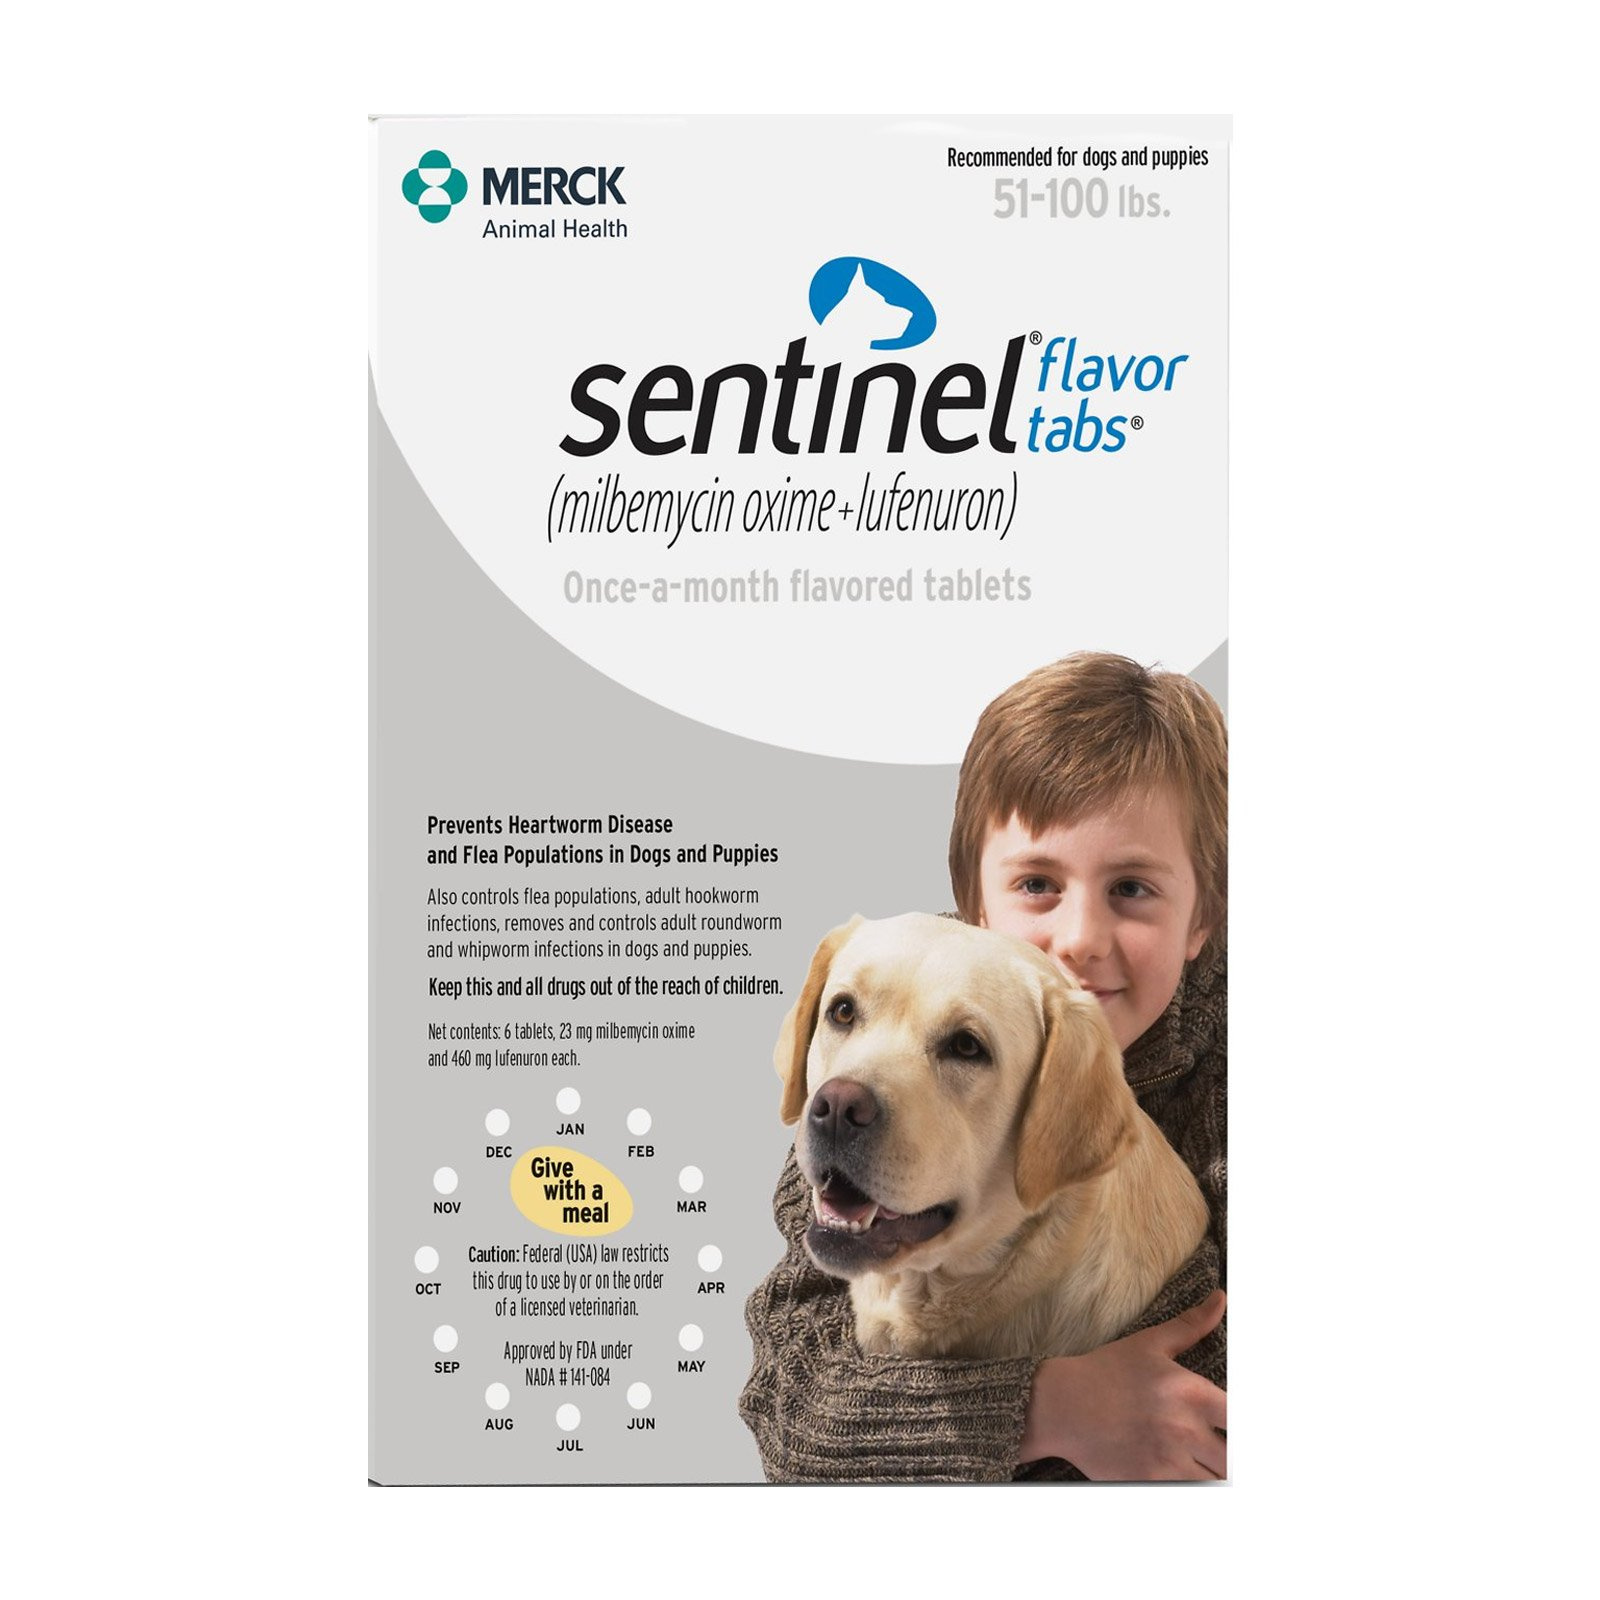 sentinel-for-dogs-51-100-lbs-white